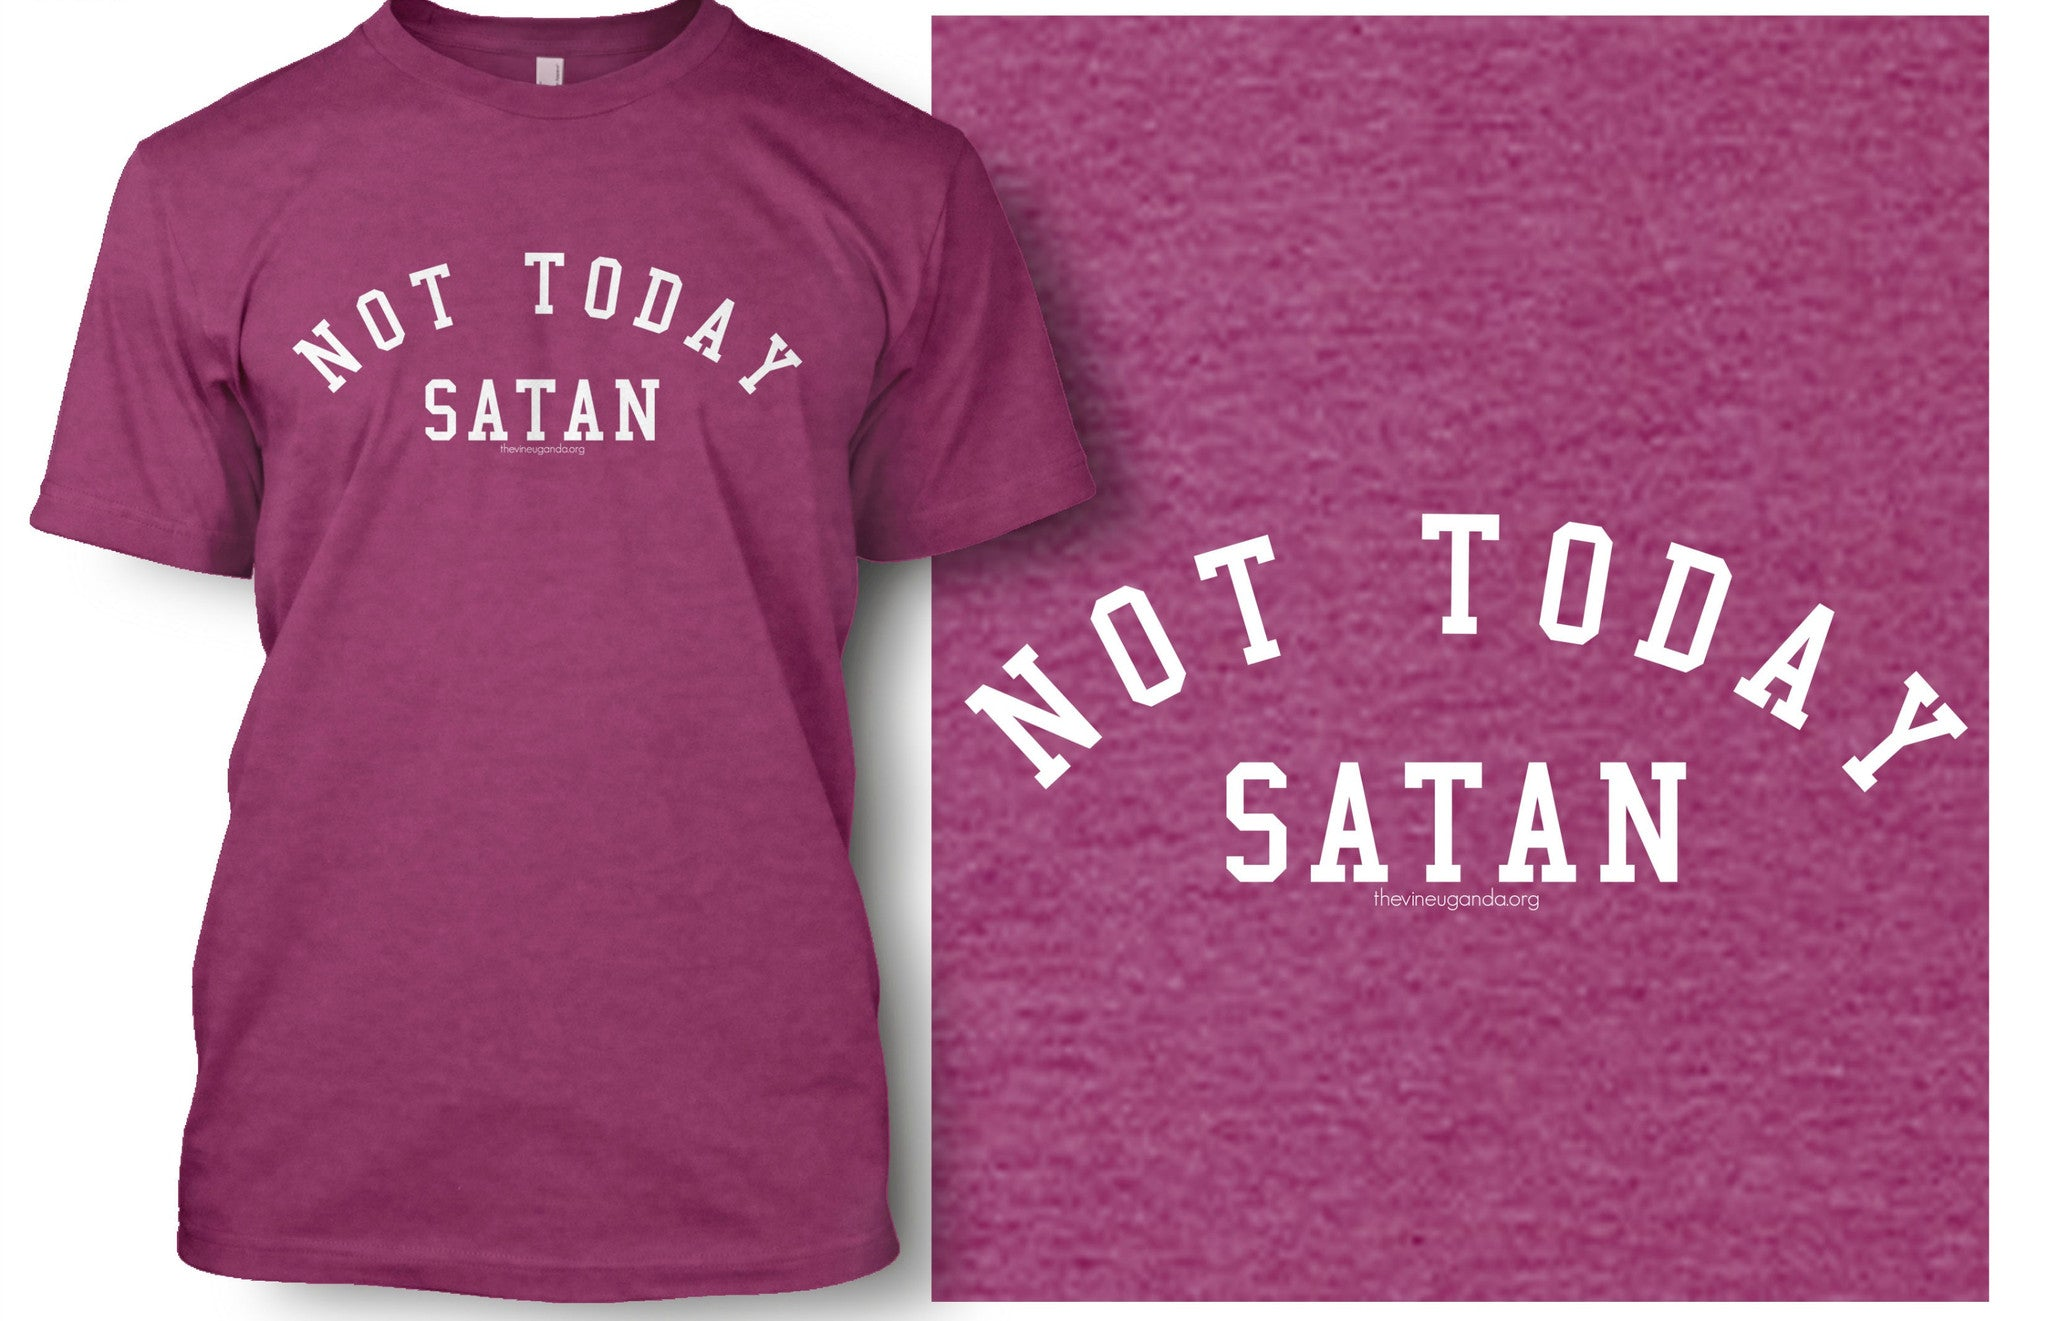 Not Today Satan Shirt (Grey & Raspberry)